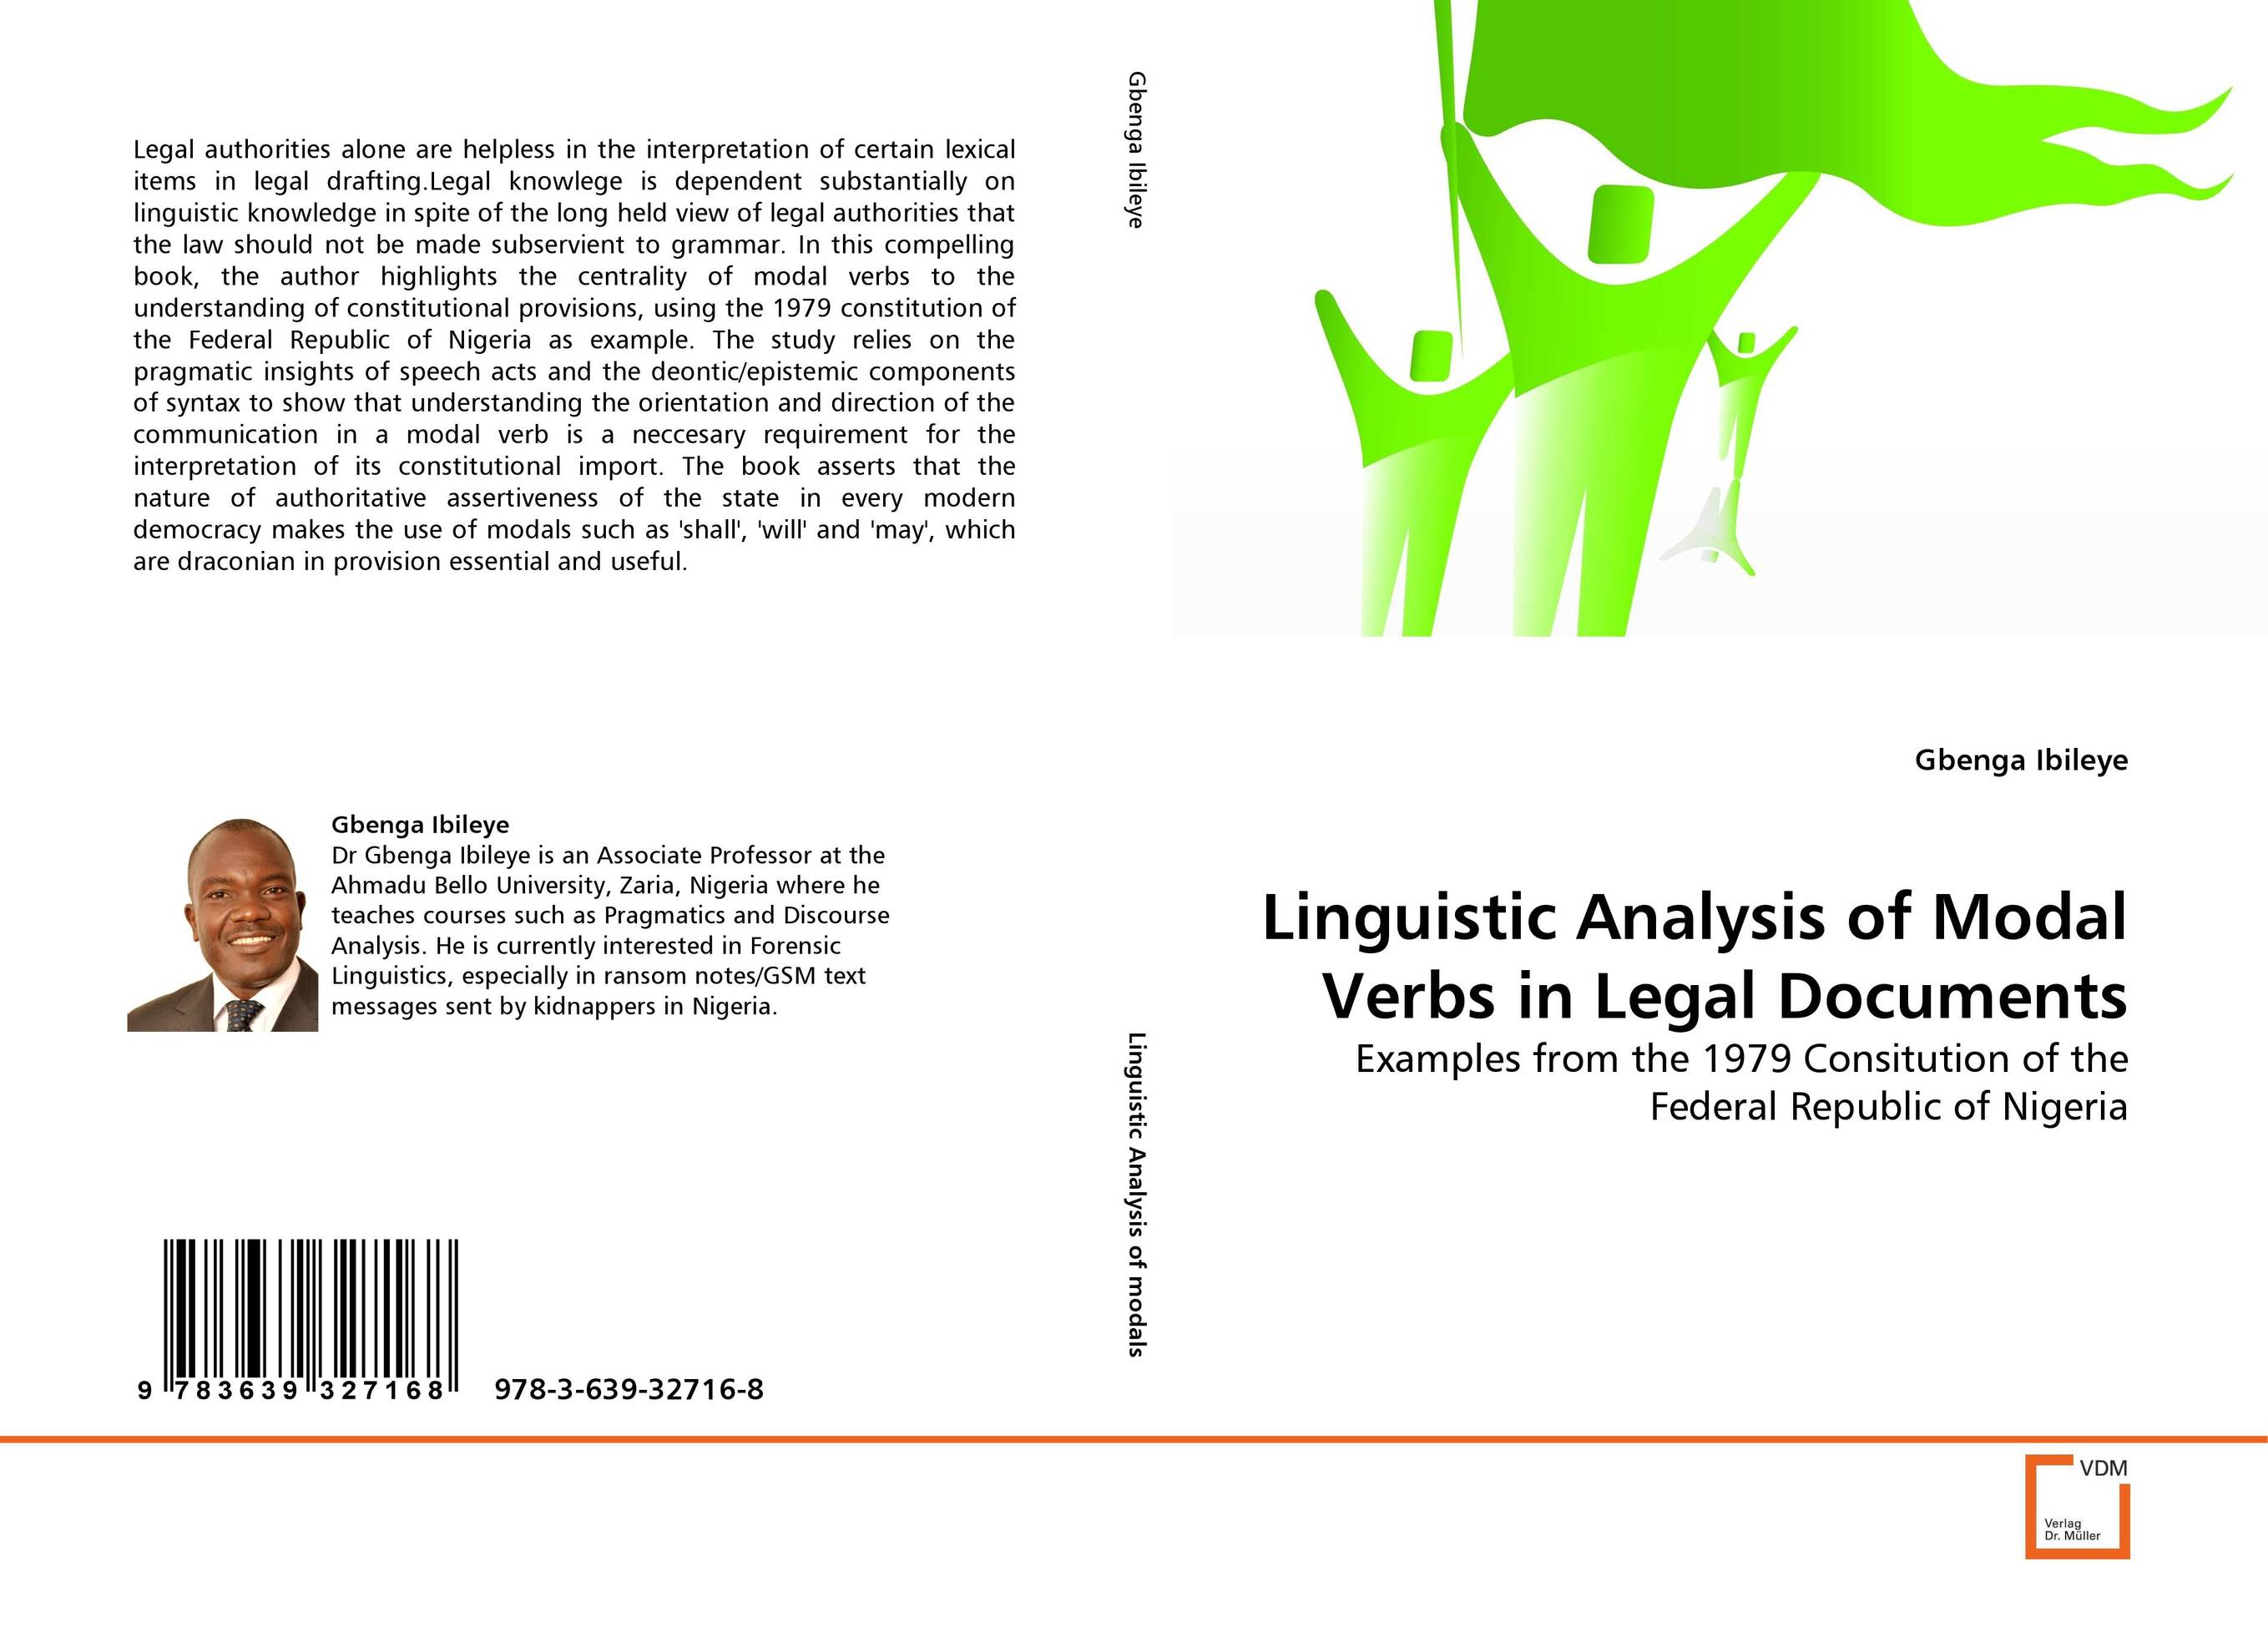 Linguistic Analysis of Modal Verbs in Legal Documents voltammetric techniques for the analysis of pharmaceuticals